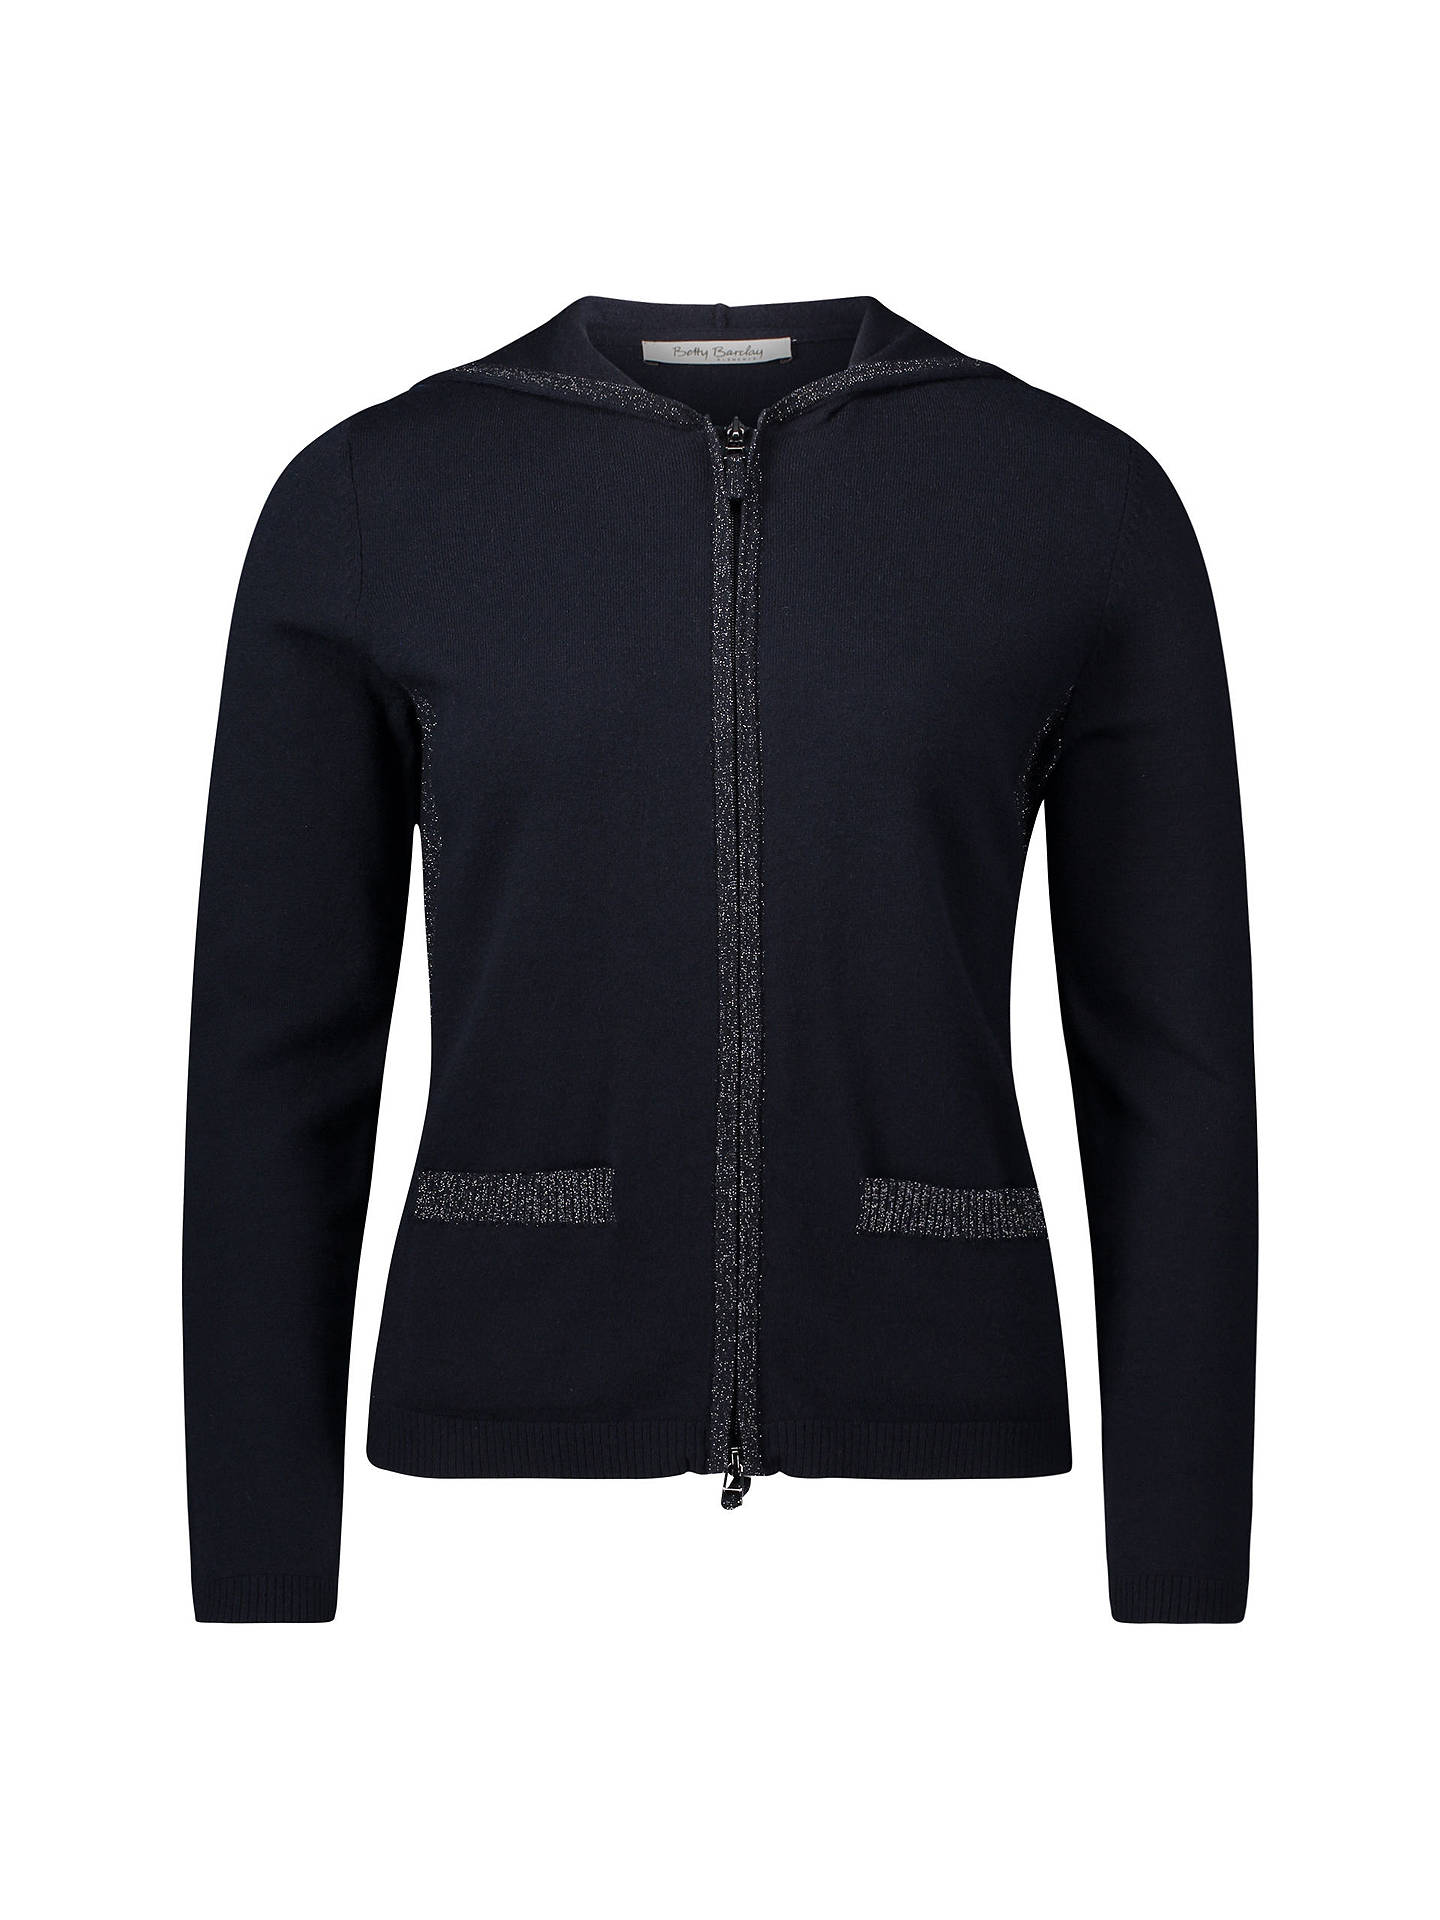 BuyBetty Barclay Hooded Cardigan, Dark Sky, 10 Online at johnlewis.com